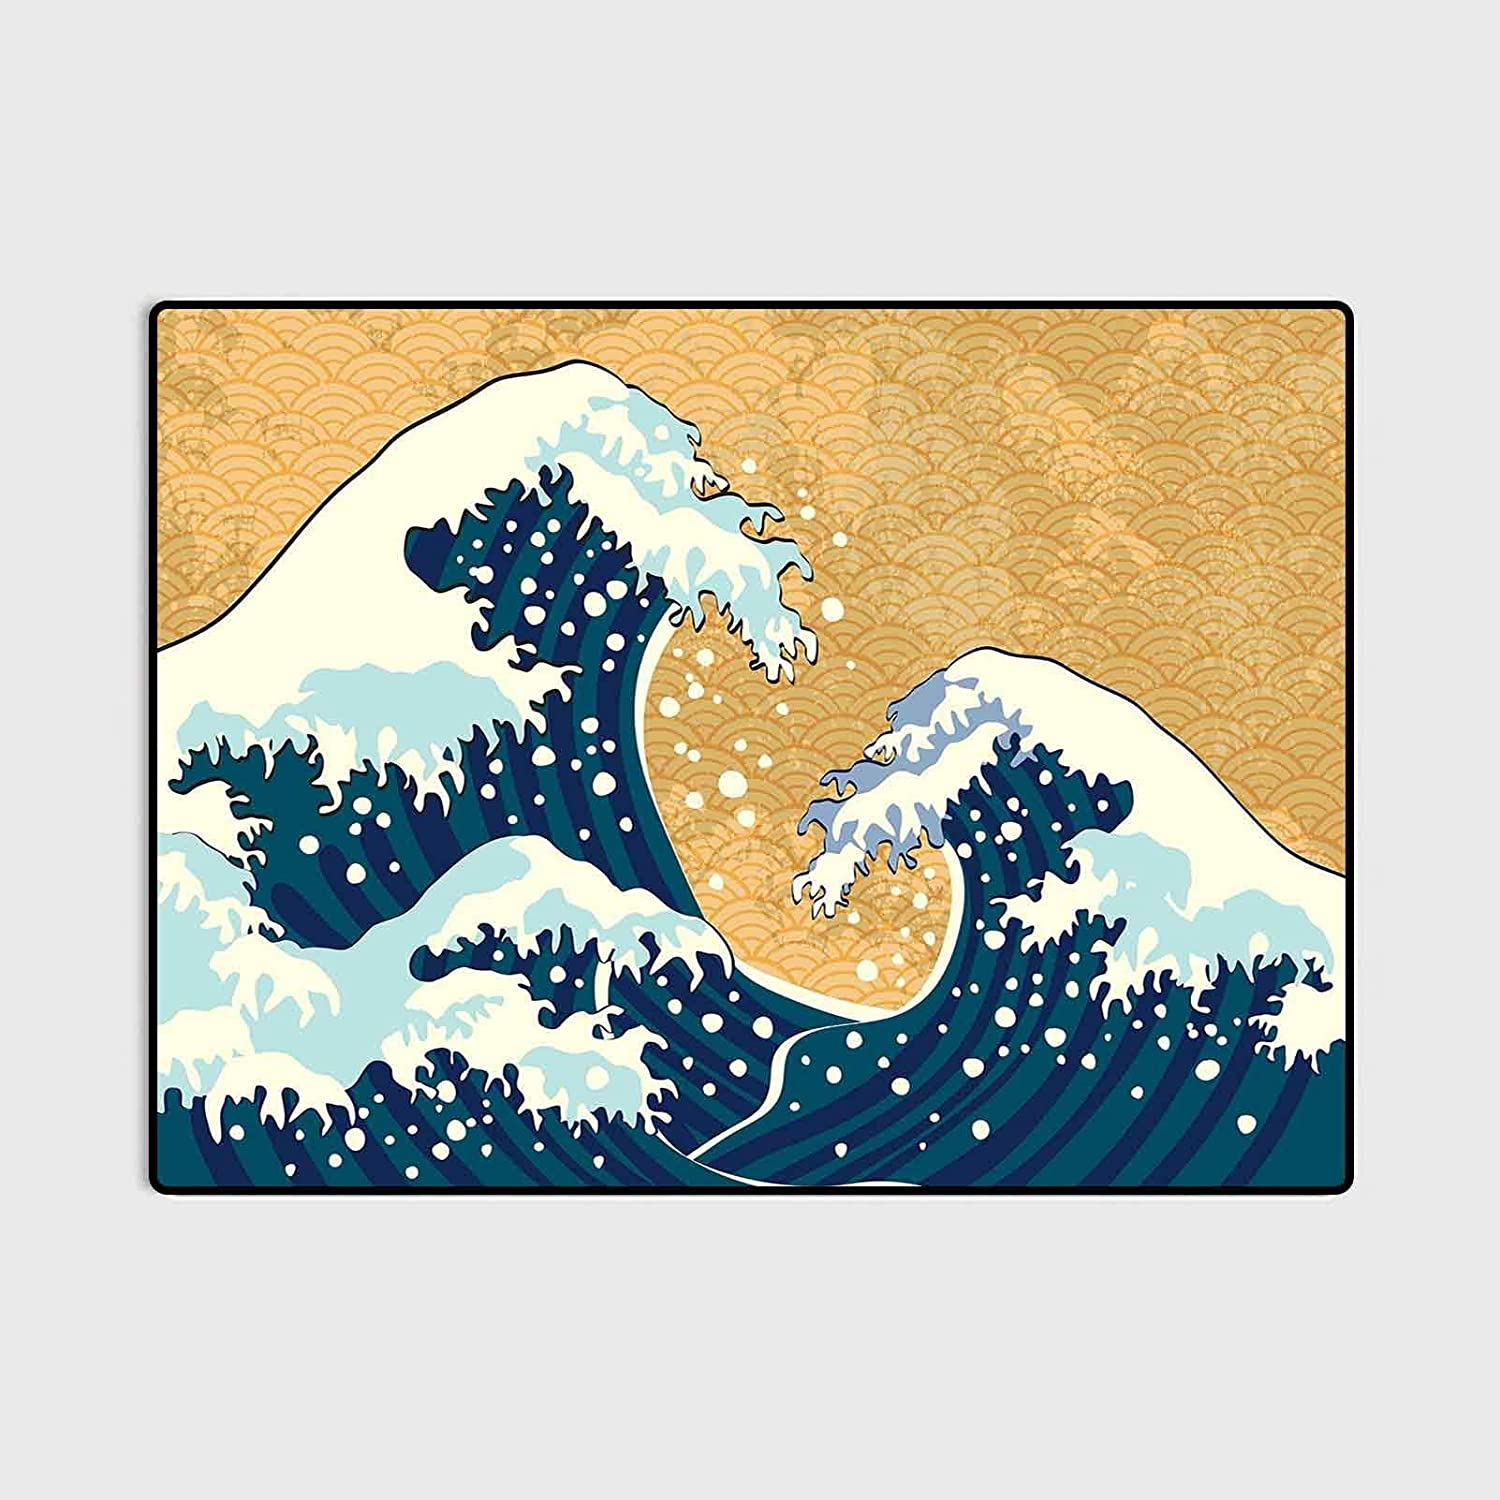 Japanese Wave Anti-Skid Area Free Shipping New Rug Storm in Sea Al sold out. Traditional Japan